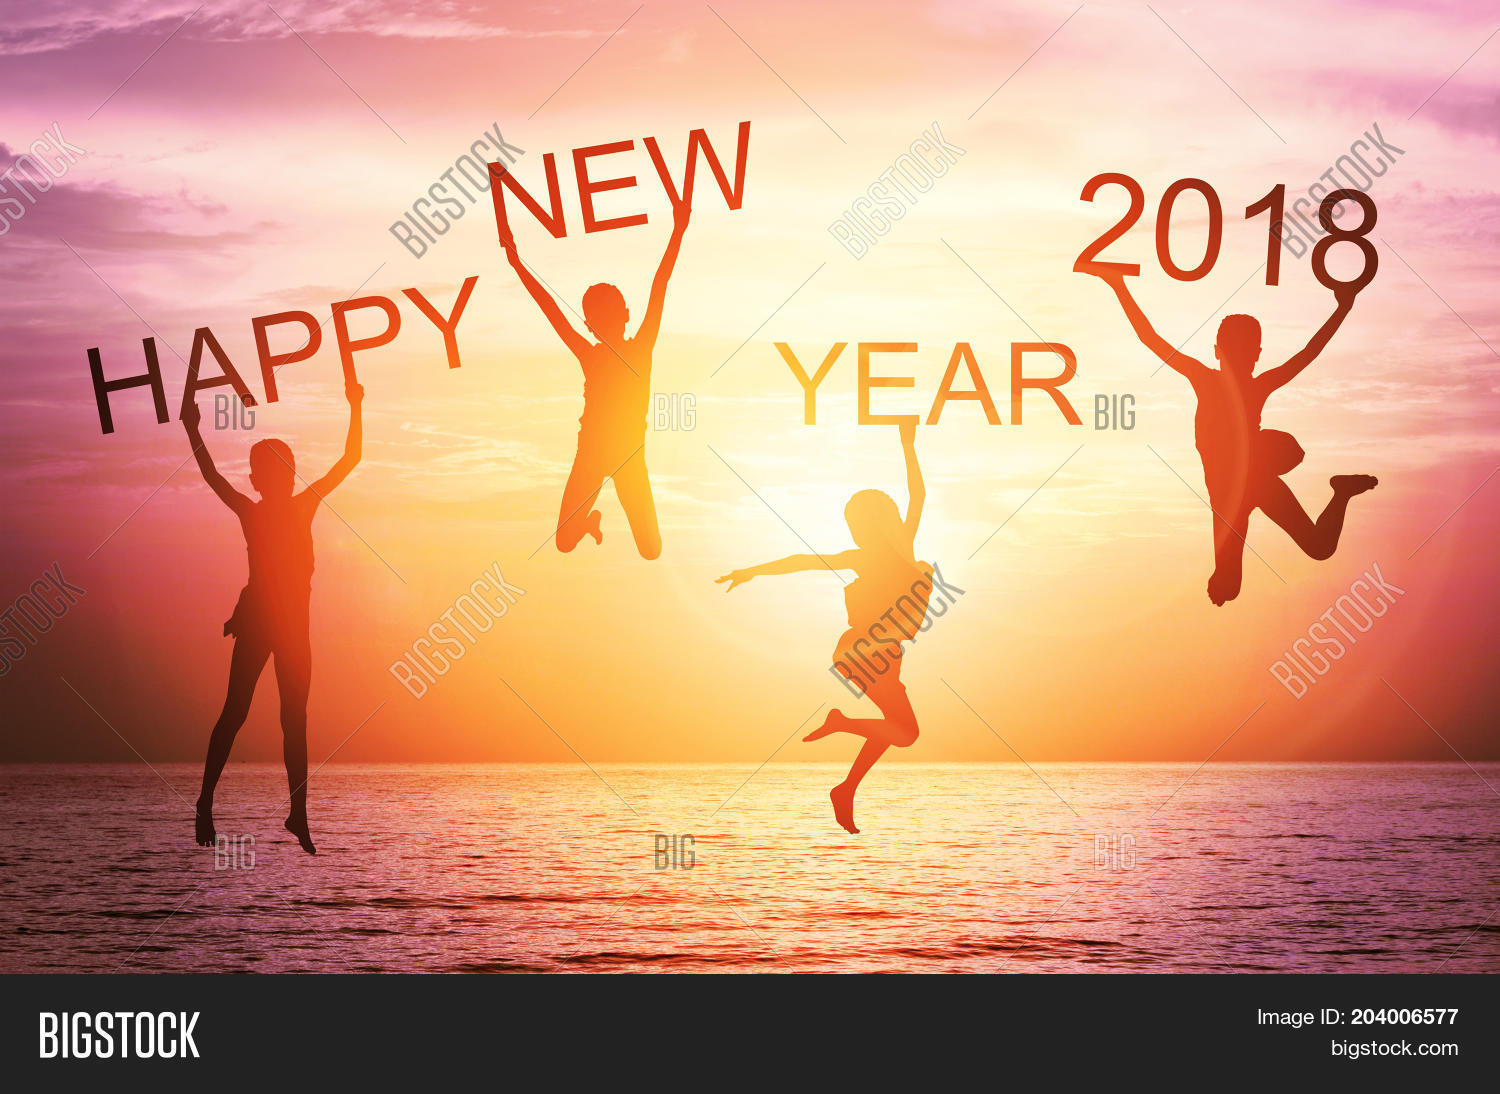 happy new year card 2018 silhouette of children girl jump on tropical beach with fantastic